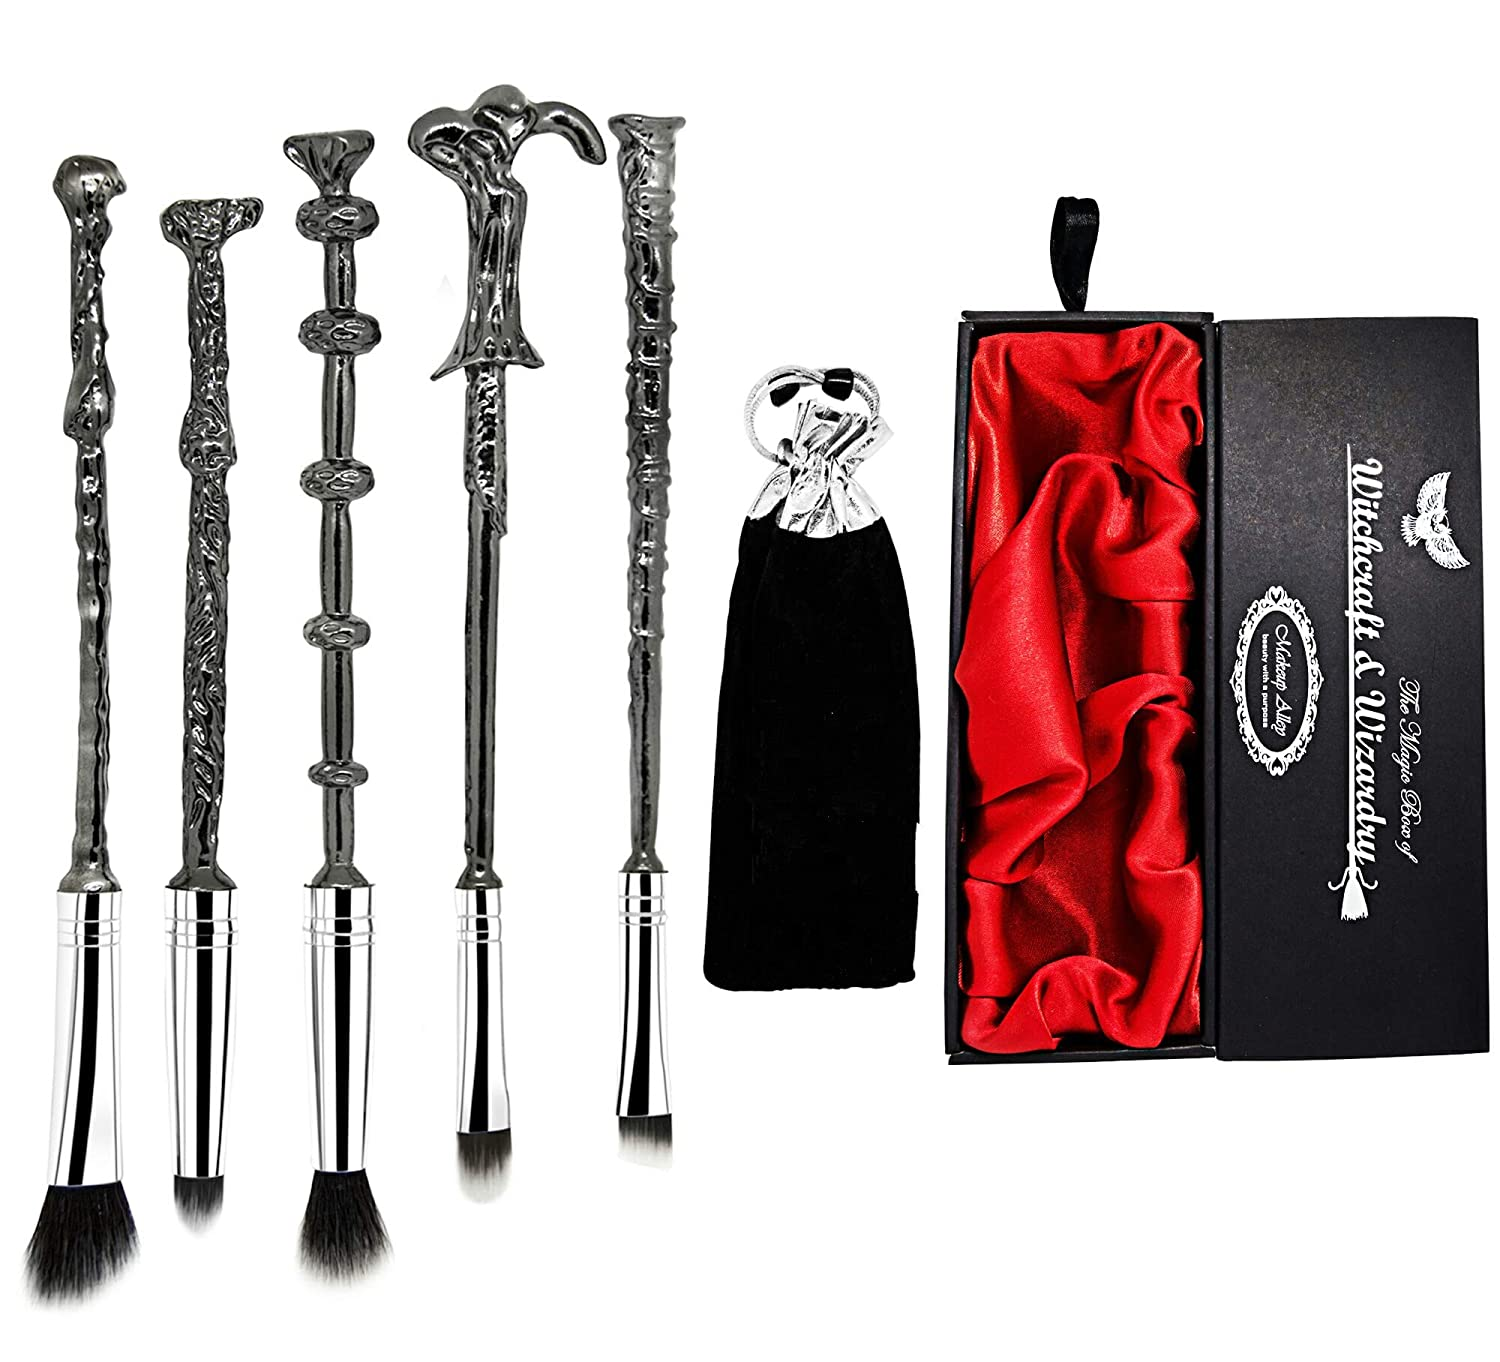 MakeupAlley Harry Potter Wand Makeup Brush Set - 5 Metal Magic Wands Wizard Brushes in a Gift Kit Bag and Box - Perfect for Eyebrows, Eyeshadow Palette, Foundation, and Powder use